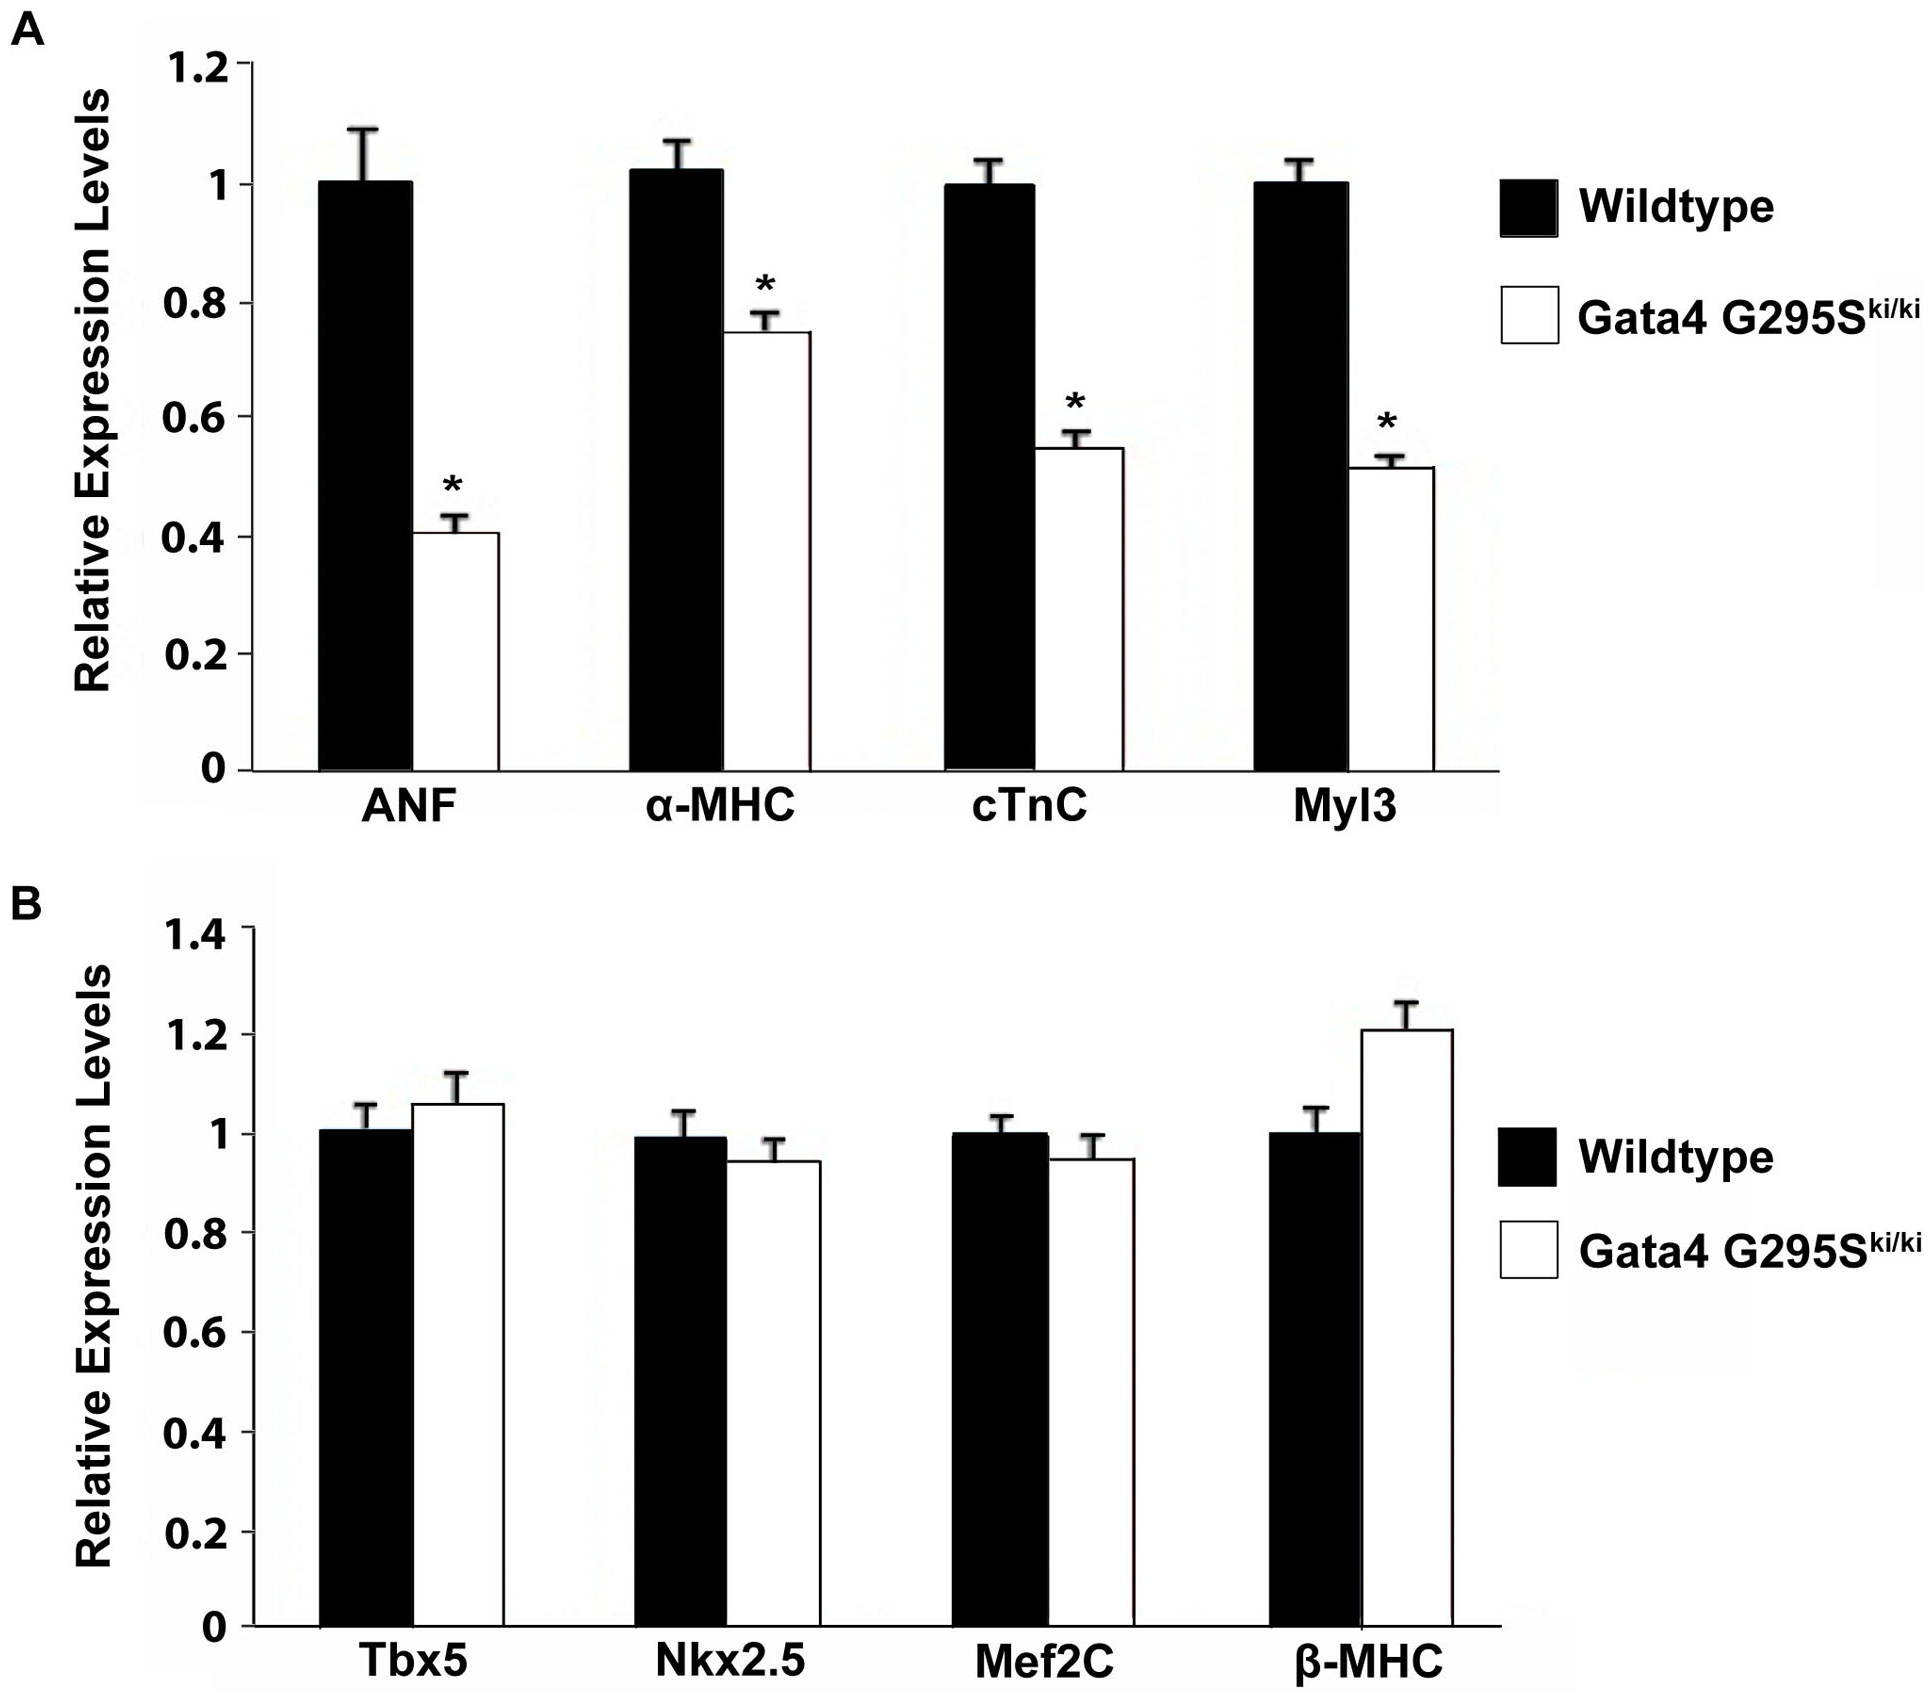 Decreased expression of Gata4 target genes in <i>Gata4 G295S<sup>ki/ki</sup></i> embryonic hearts.